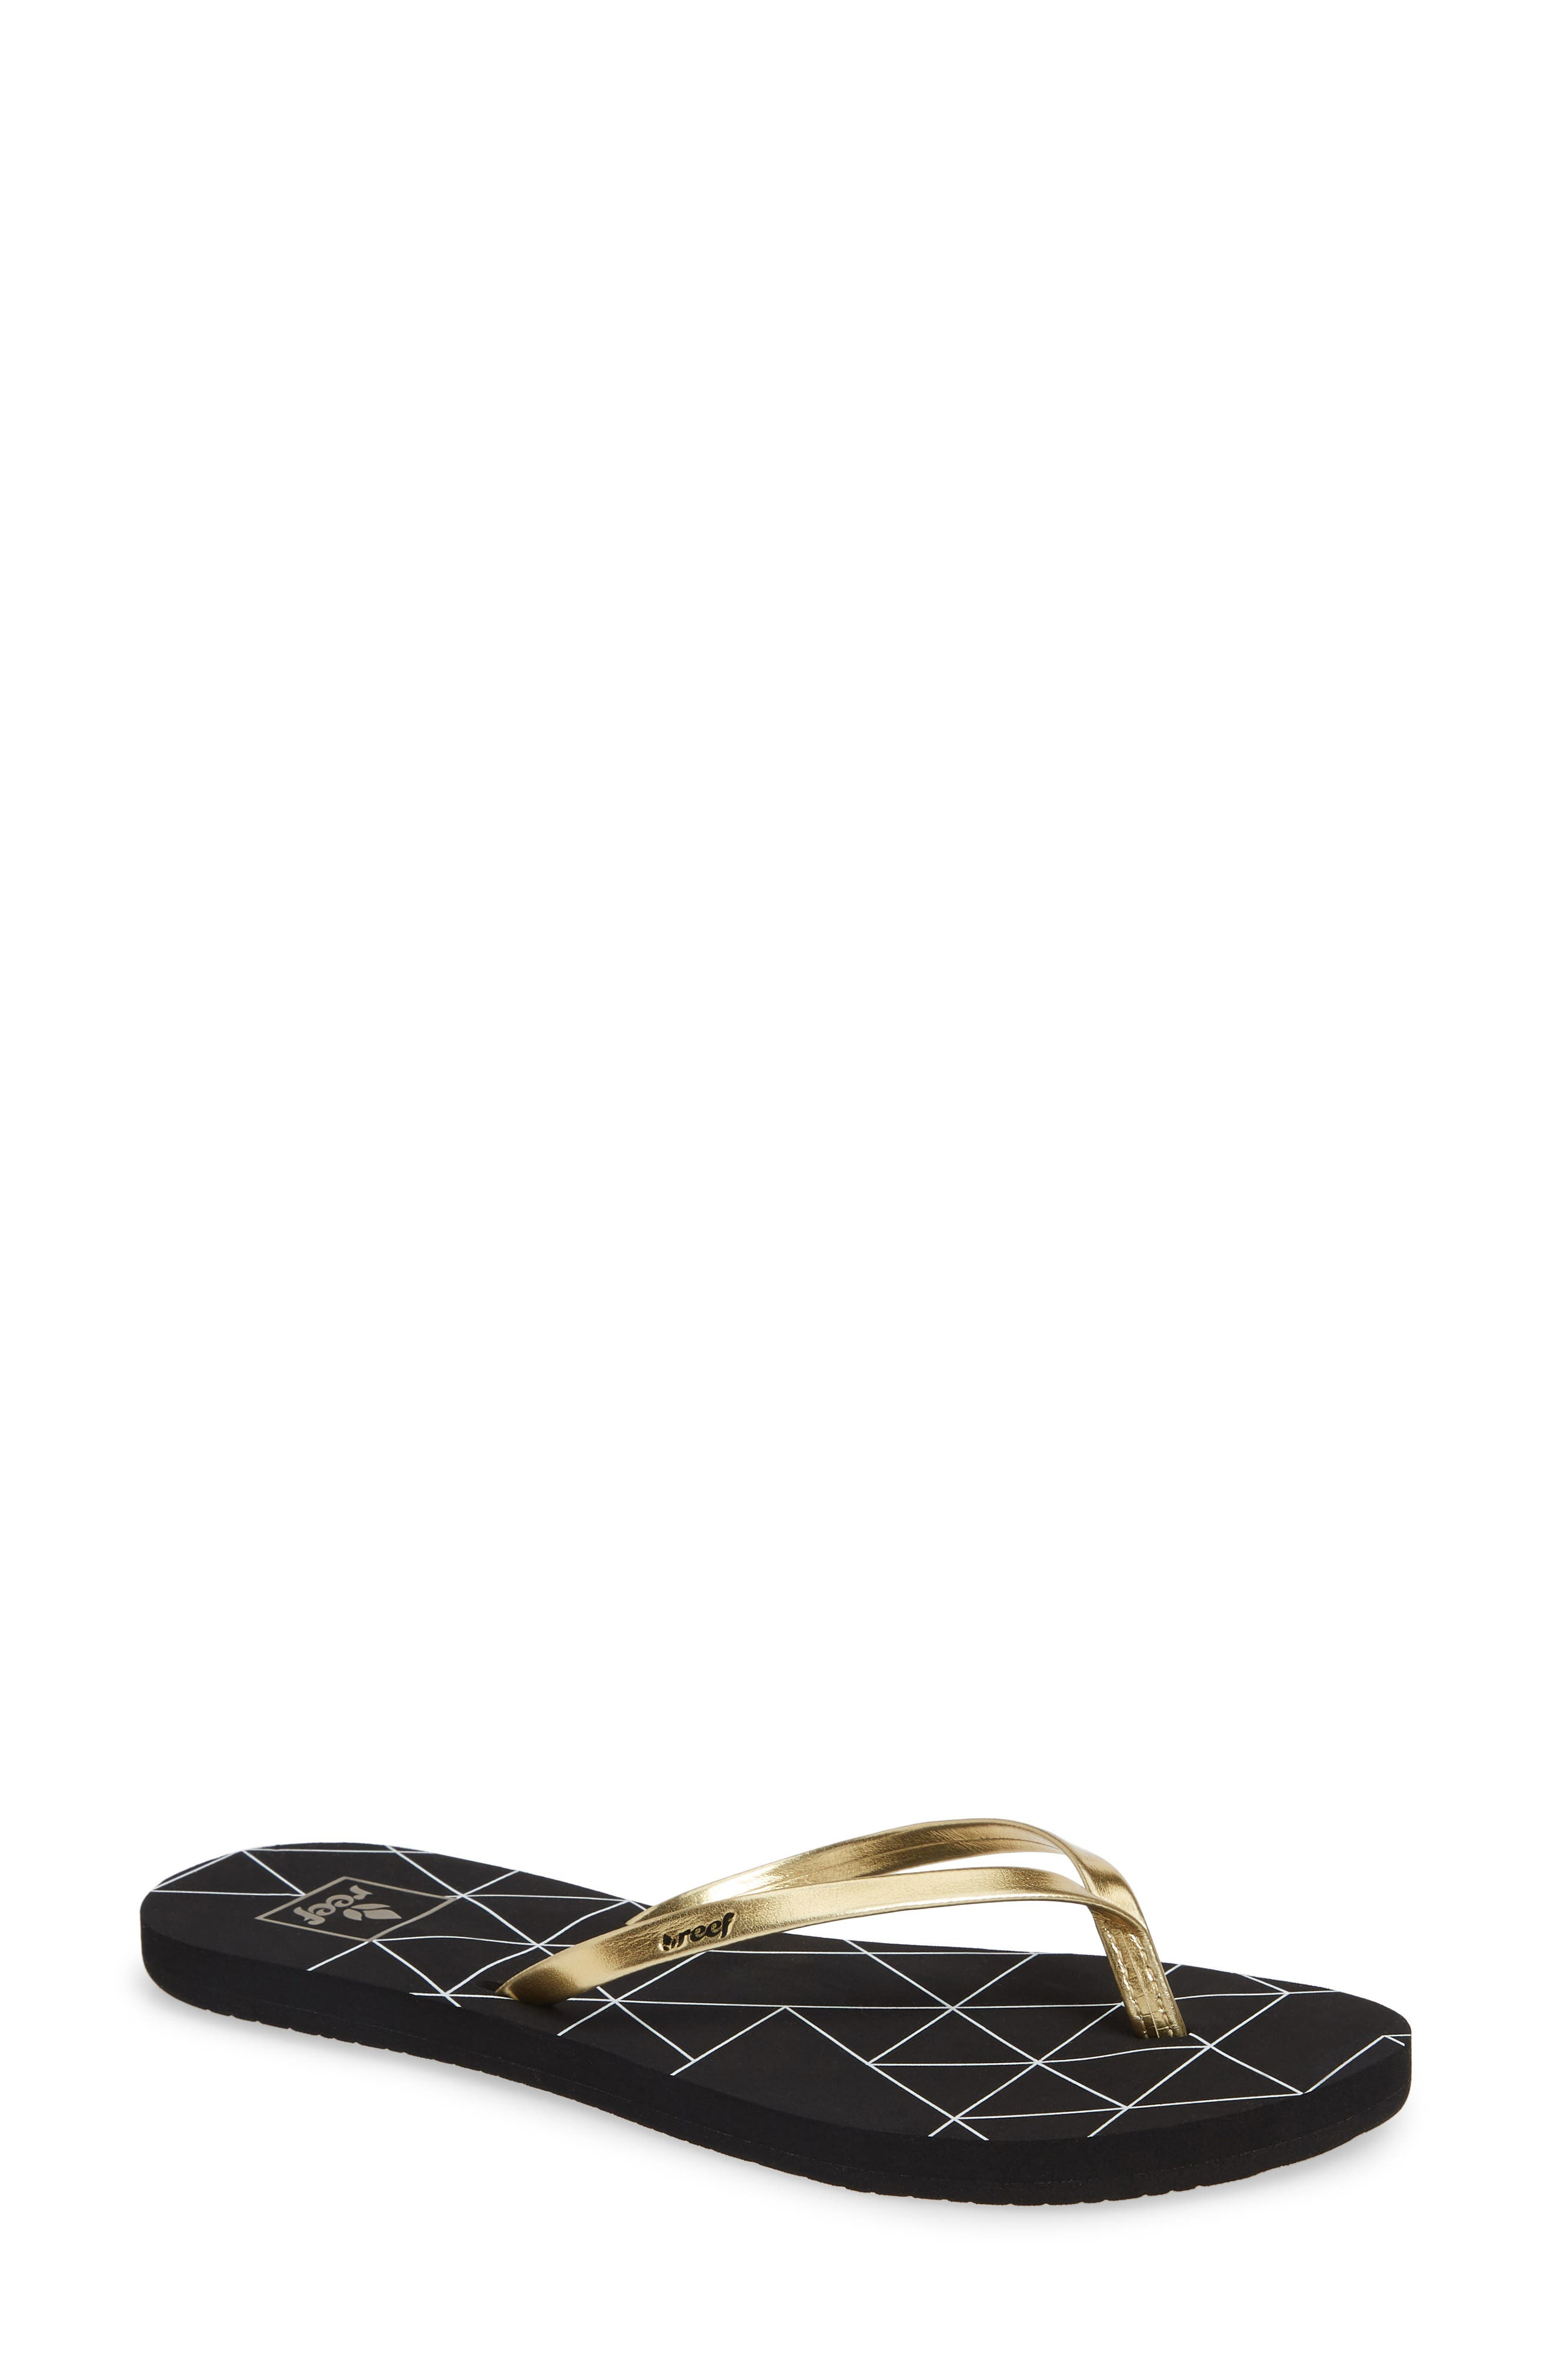 REEF Bliss-Full Flip Flop in Gold Pyramids